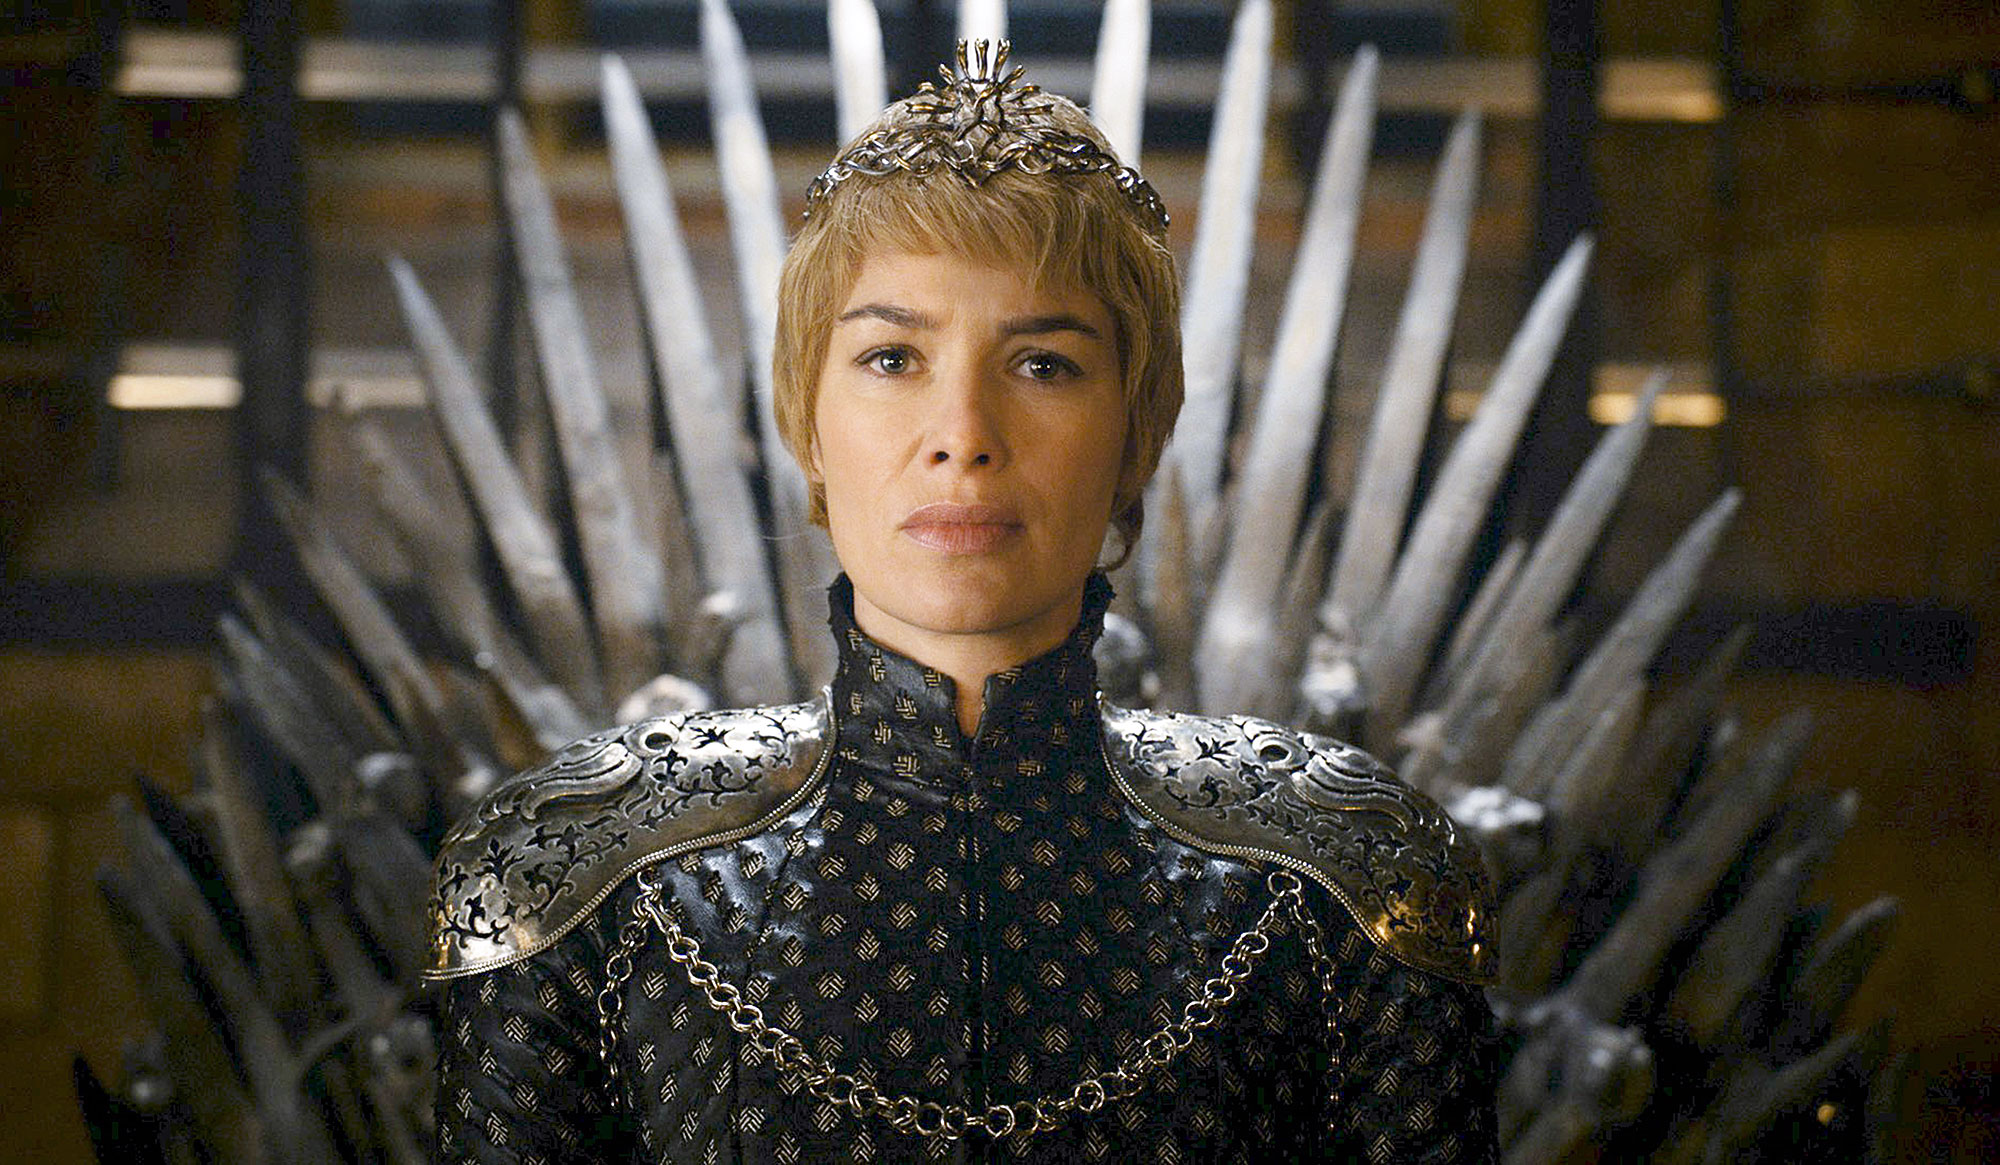 Lena Headey as Cersei Lannister on Game of Thrones Emmy Nominations 2019 Snubs